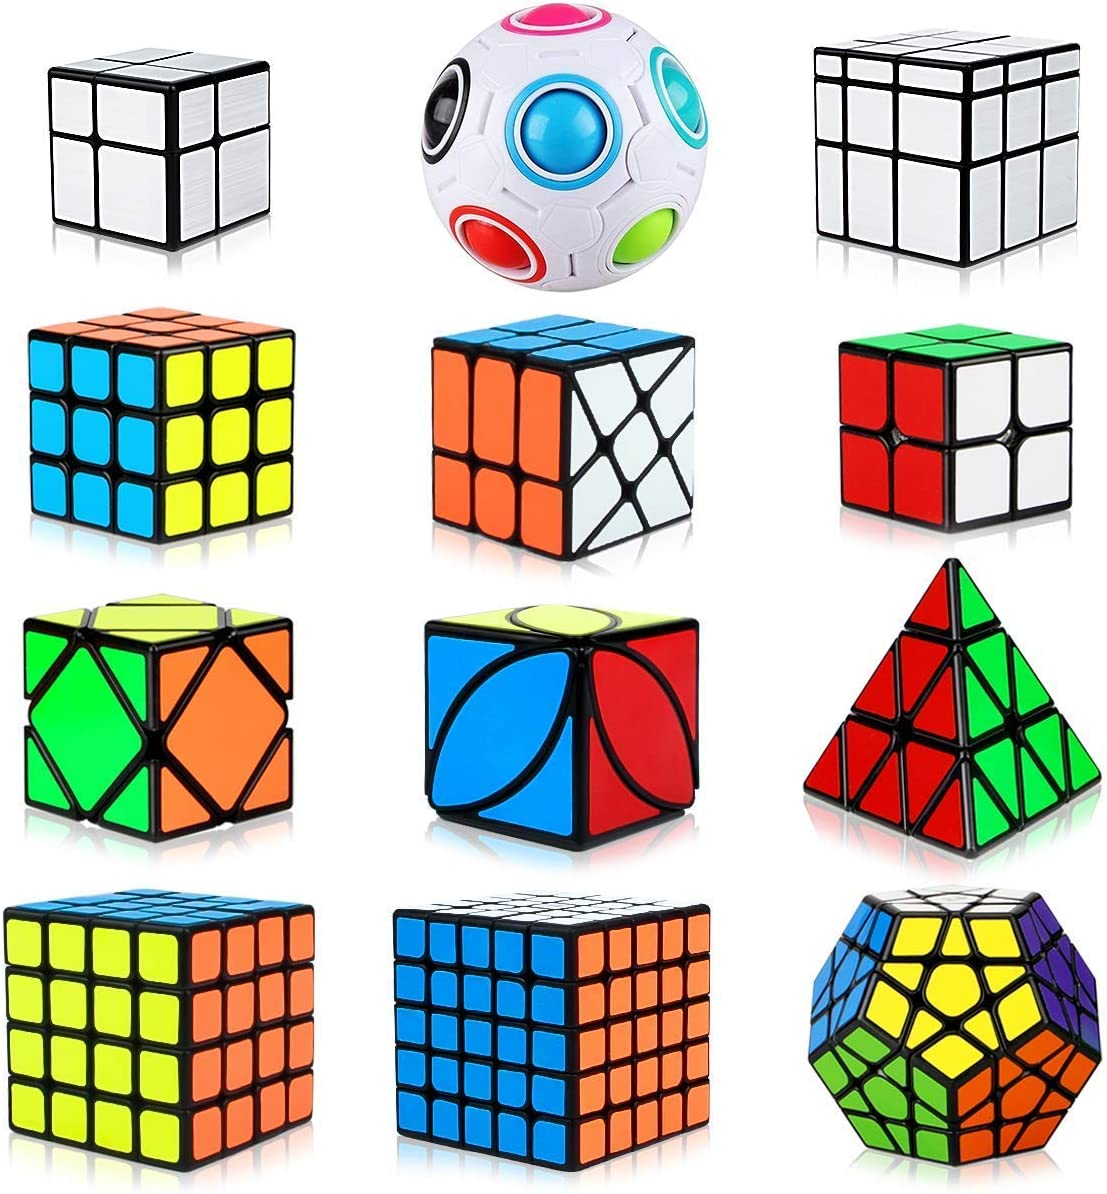 Aiduy Speed Cube Set 12 Piezas, Cubo Piramide Triángulo 2x2 3x3 4x4 5x5 Cubo Mágico Profesional, Cubo Megaminx + Cubo Skew Ivy + Cubo Mirror + Magic Rainbow Ball Speed Cube: Amazon.es: